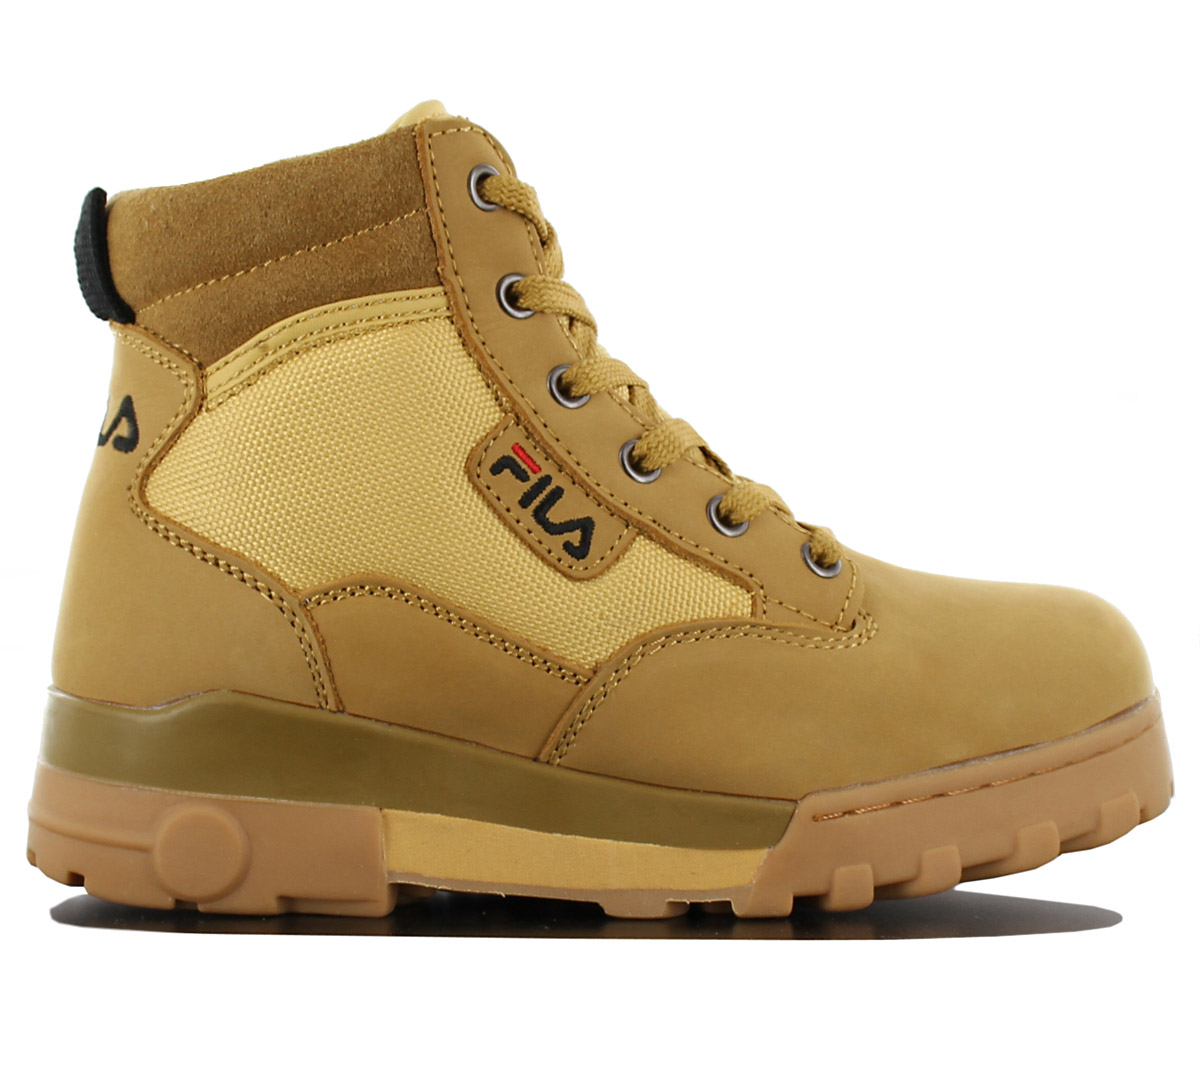 Details about Fila Grunge mid Women's Ladies Winter Boots Shoes Leather  4010281.EDU Chipmunk